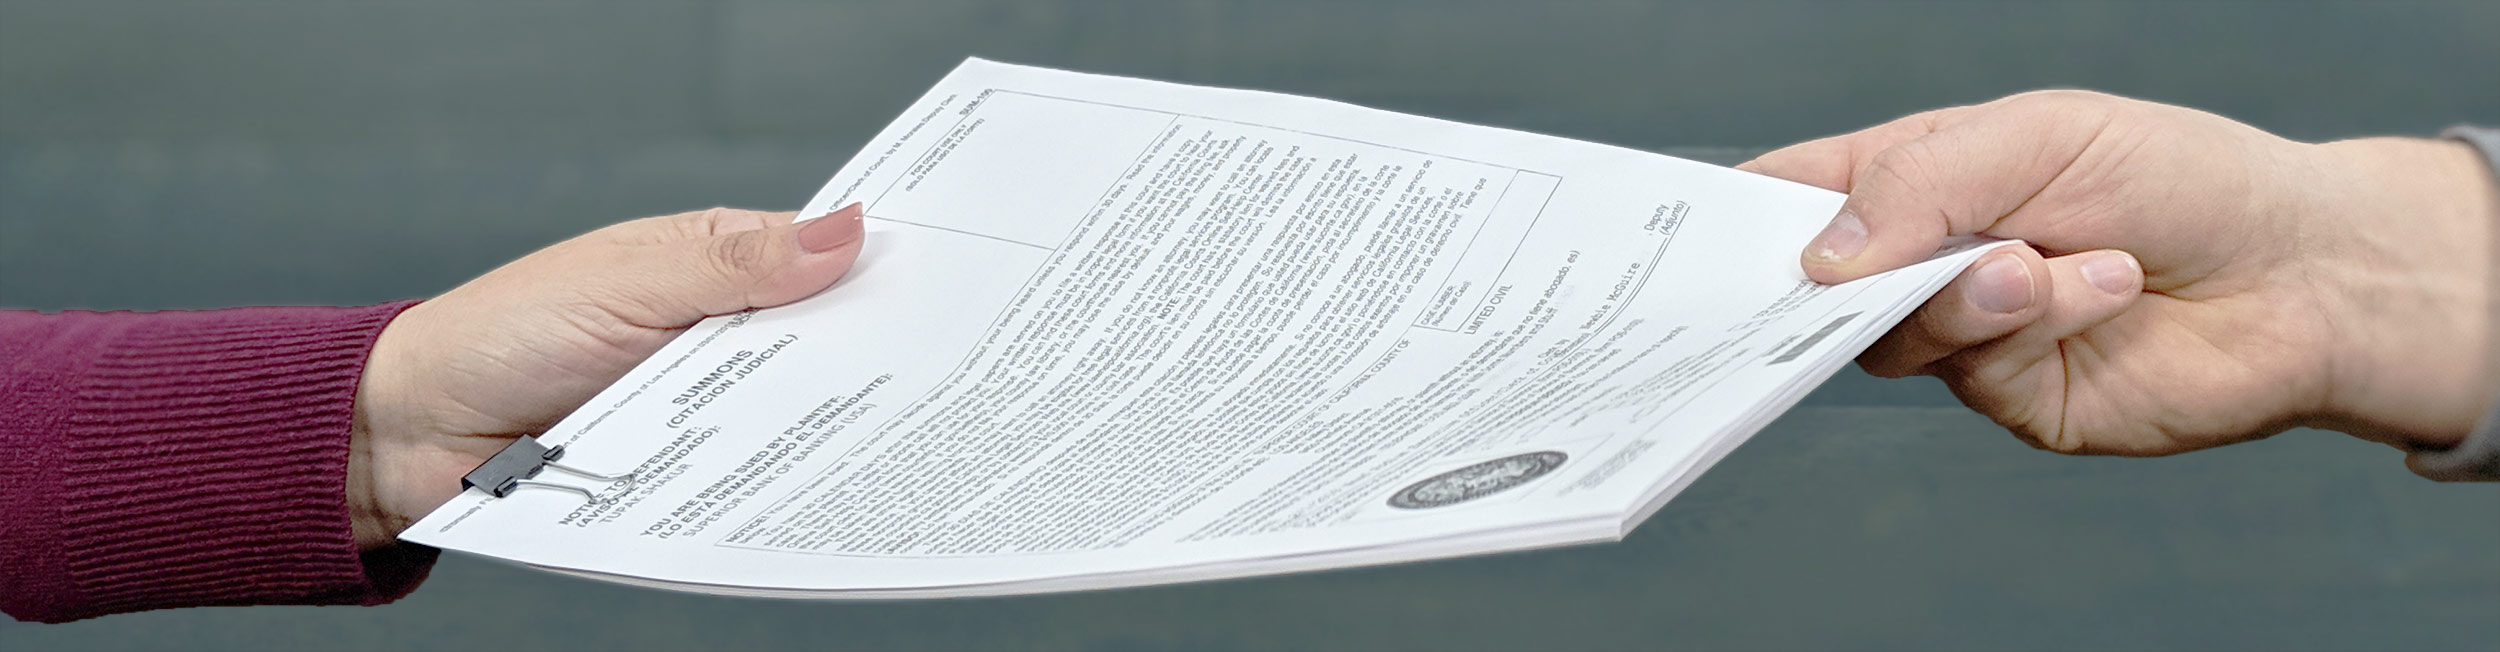 Serving Documents_2